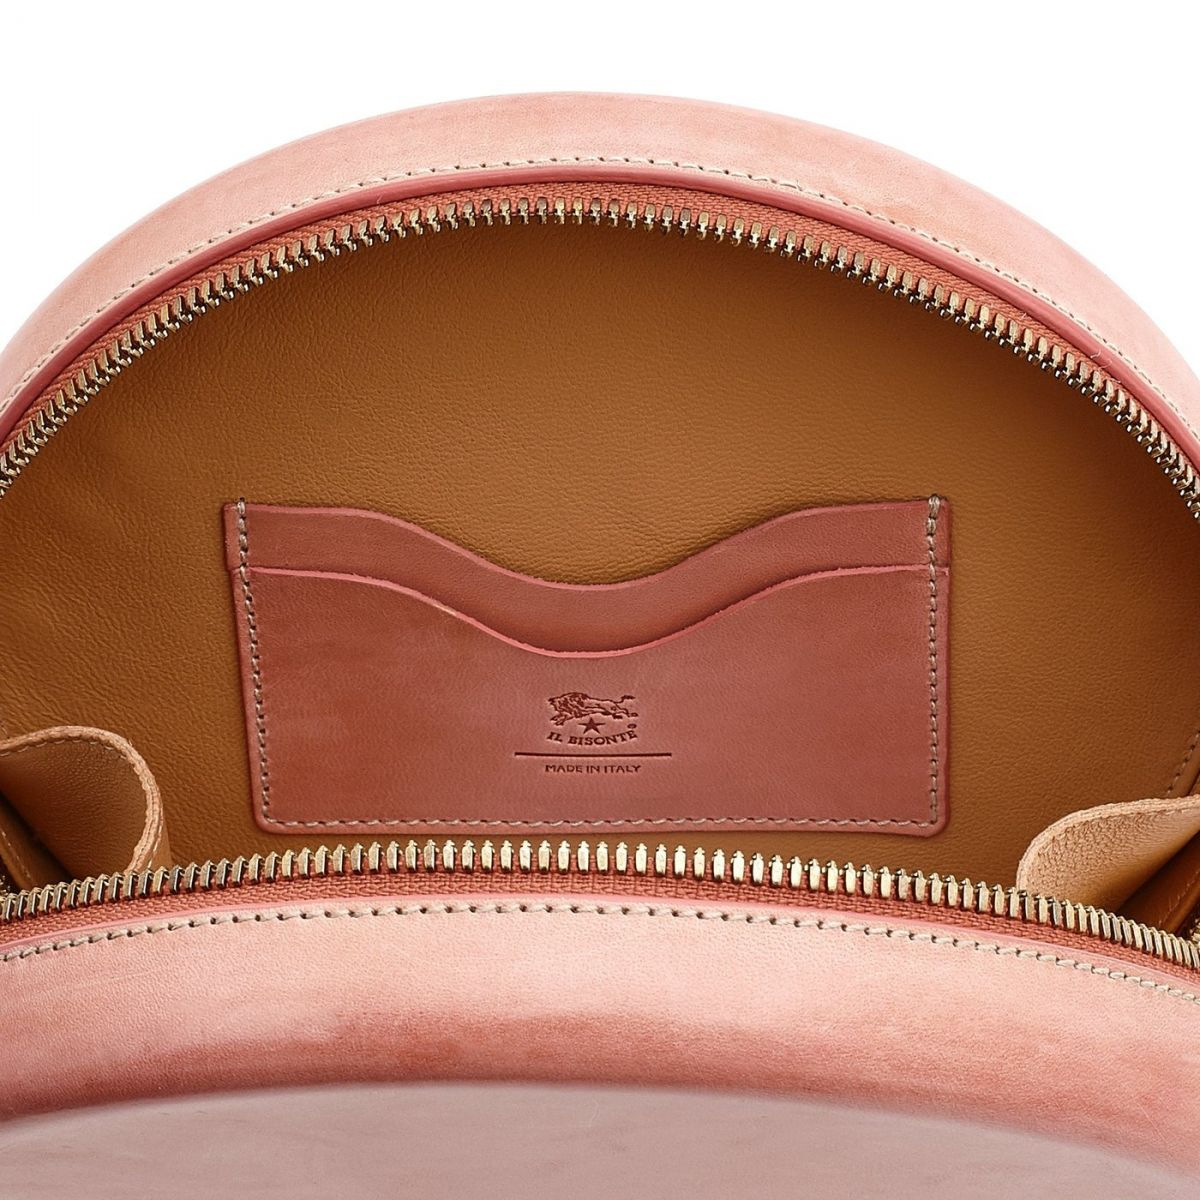 Women's Crossbody Bag  in Leather BCR149 color Pink | Details